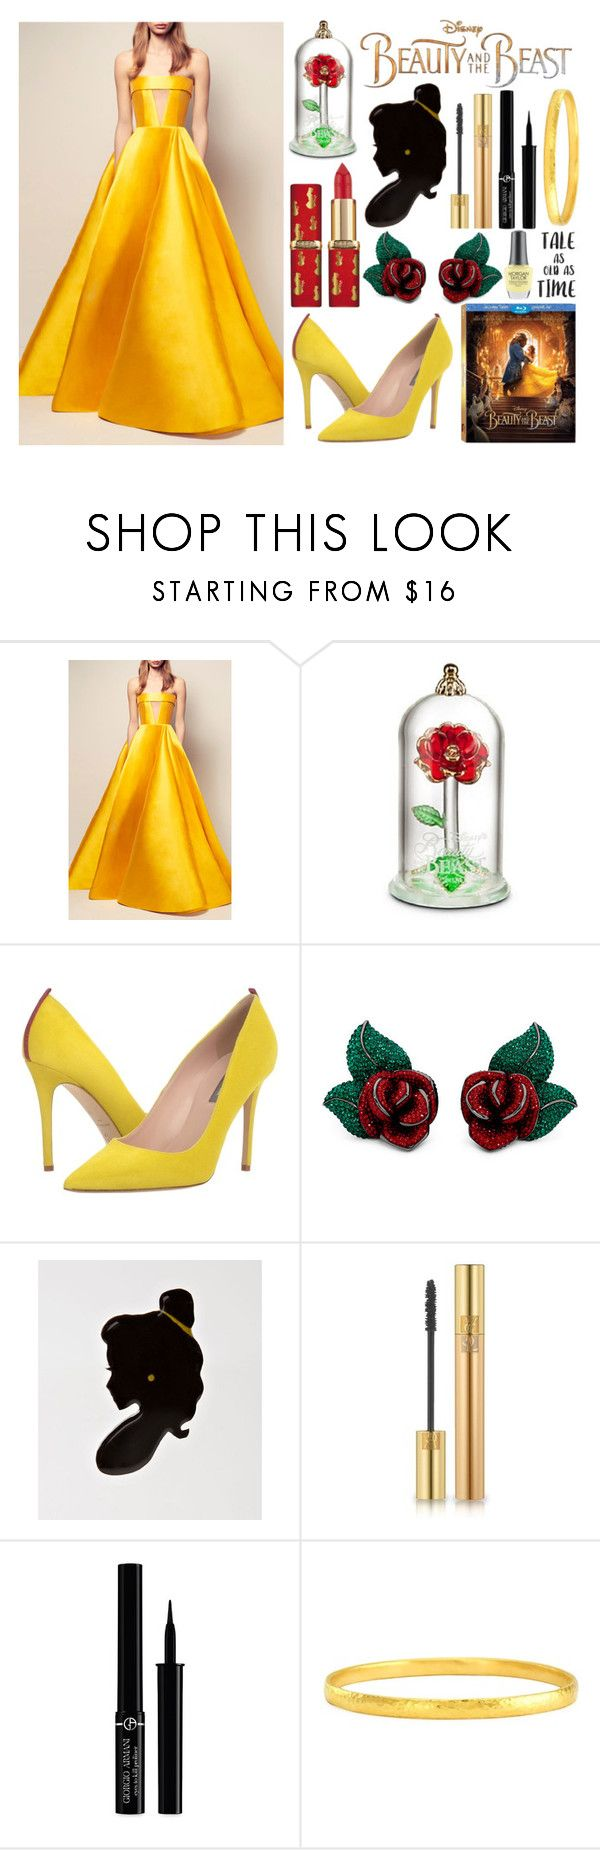 """""""Beauty and the Beast"""" by princess13inred ❤ liked on Polyvore featuring Disney, Alex Perry, SJP, L'Oréal Paris, Yves Saint Laurent, Giorgio Armani, Gurhan and Morgan Taylor"""